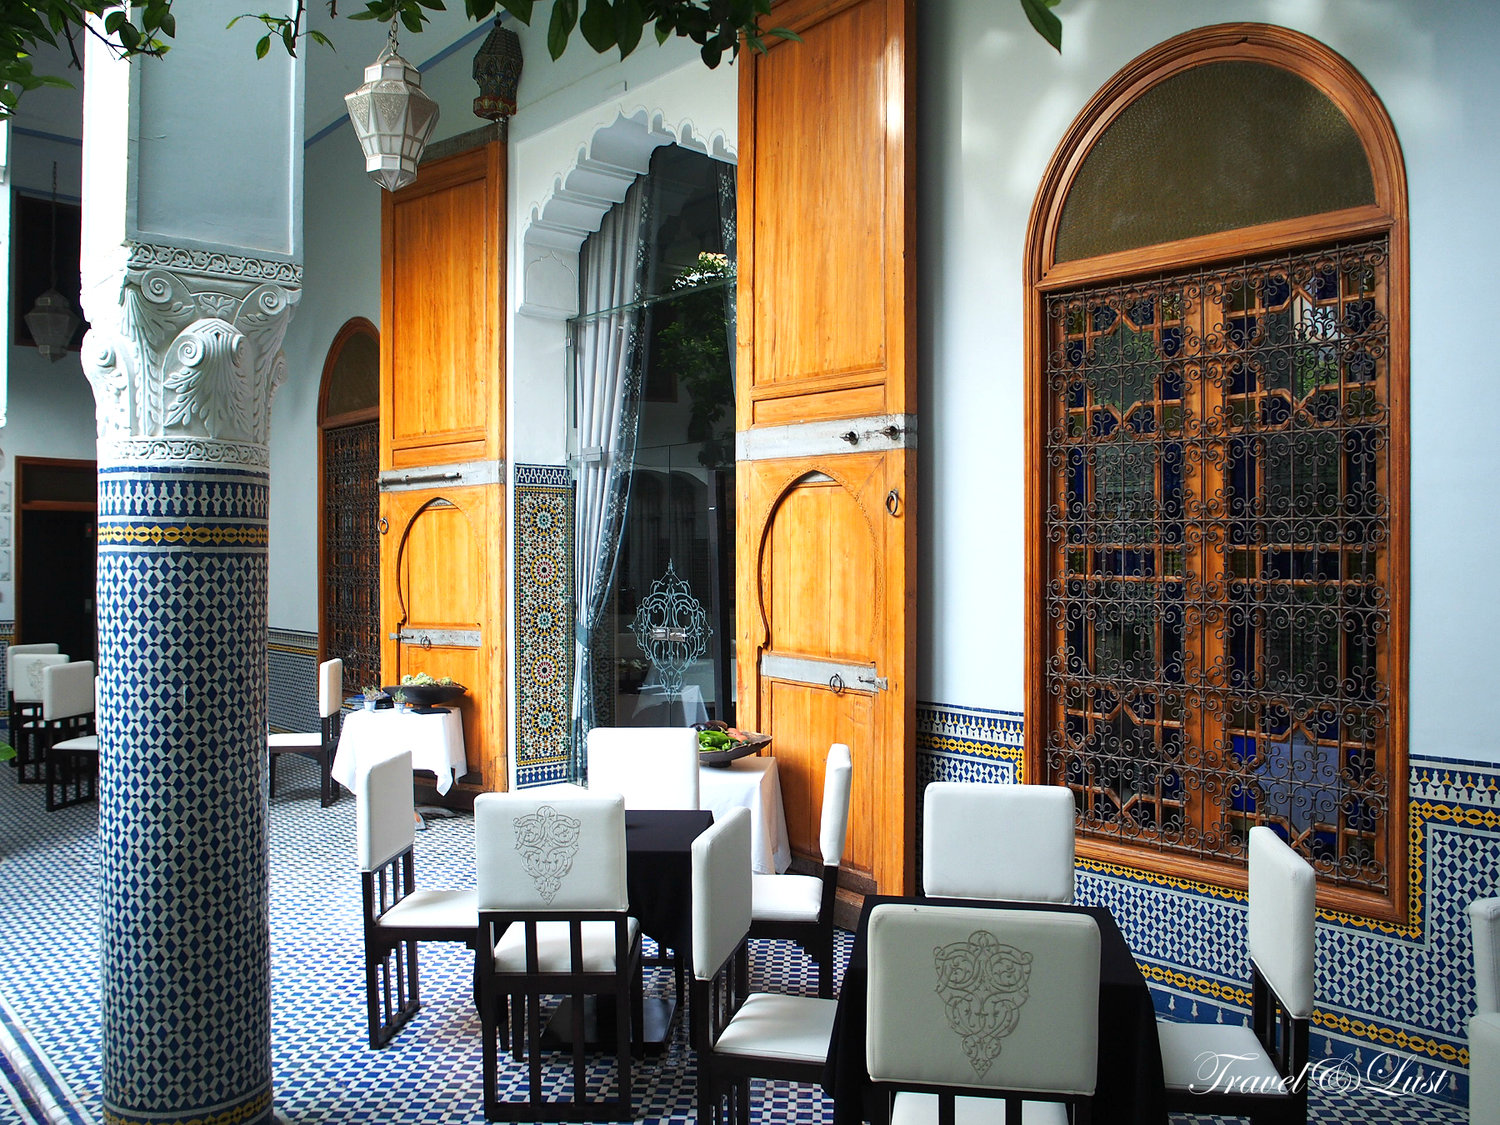 Eden restaurant with zellij tiles, carved woodwork and a view out onto the inner patio.